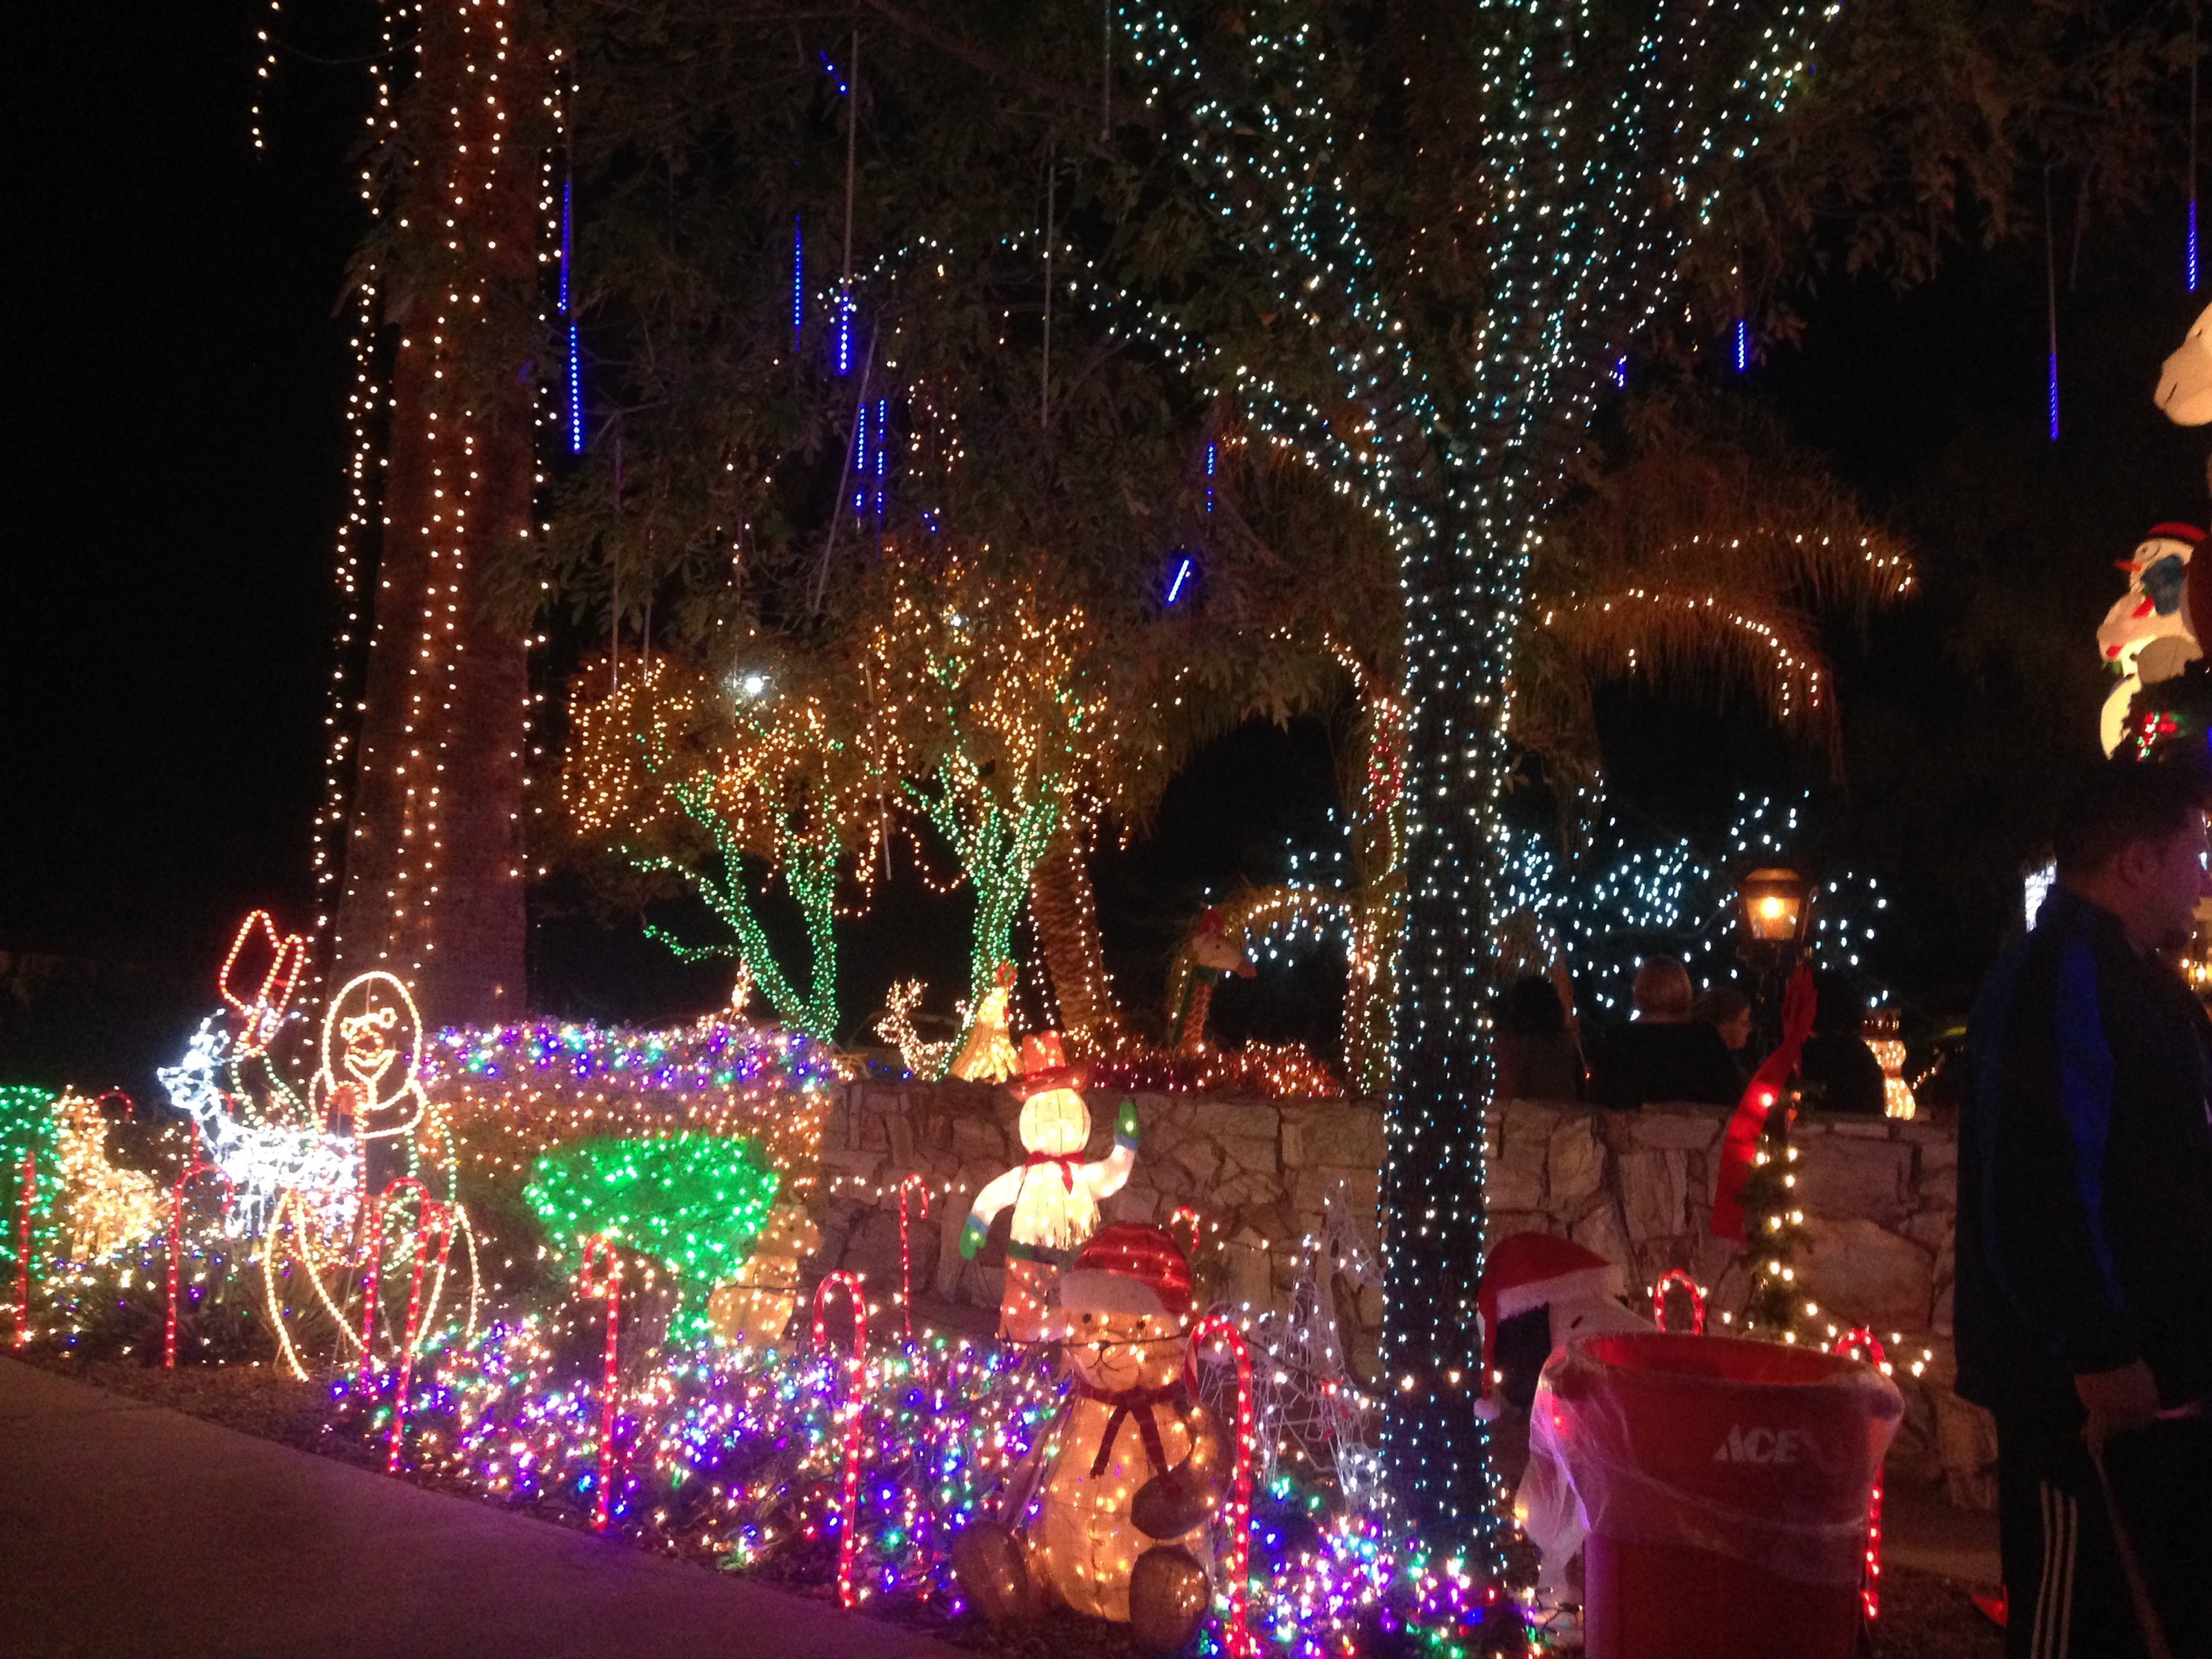 Lee And Patricia Sepanek Decorated Their Arcadia Home With 250,000  Christmas Lights For Decades.